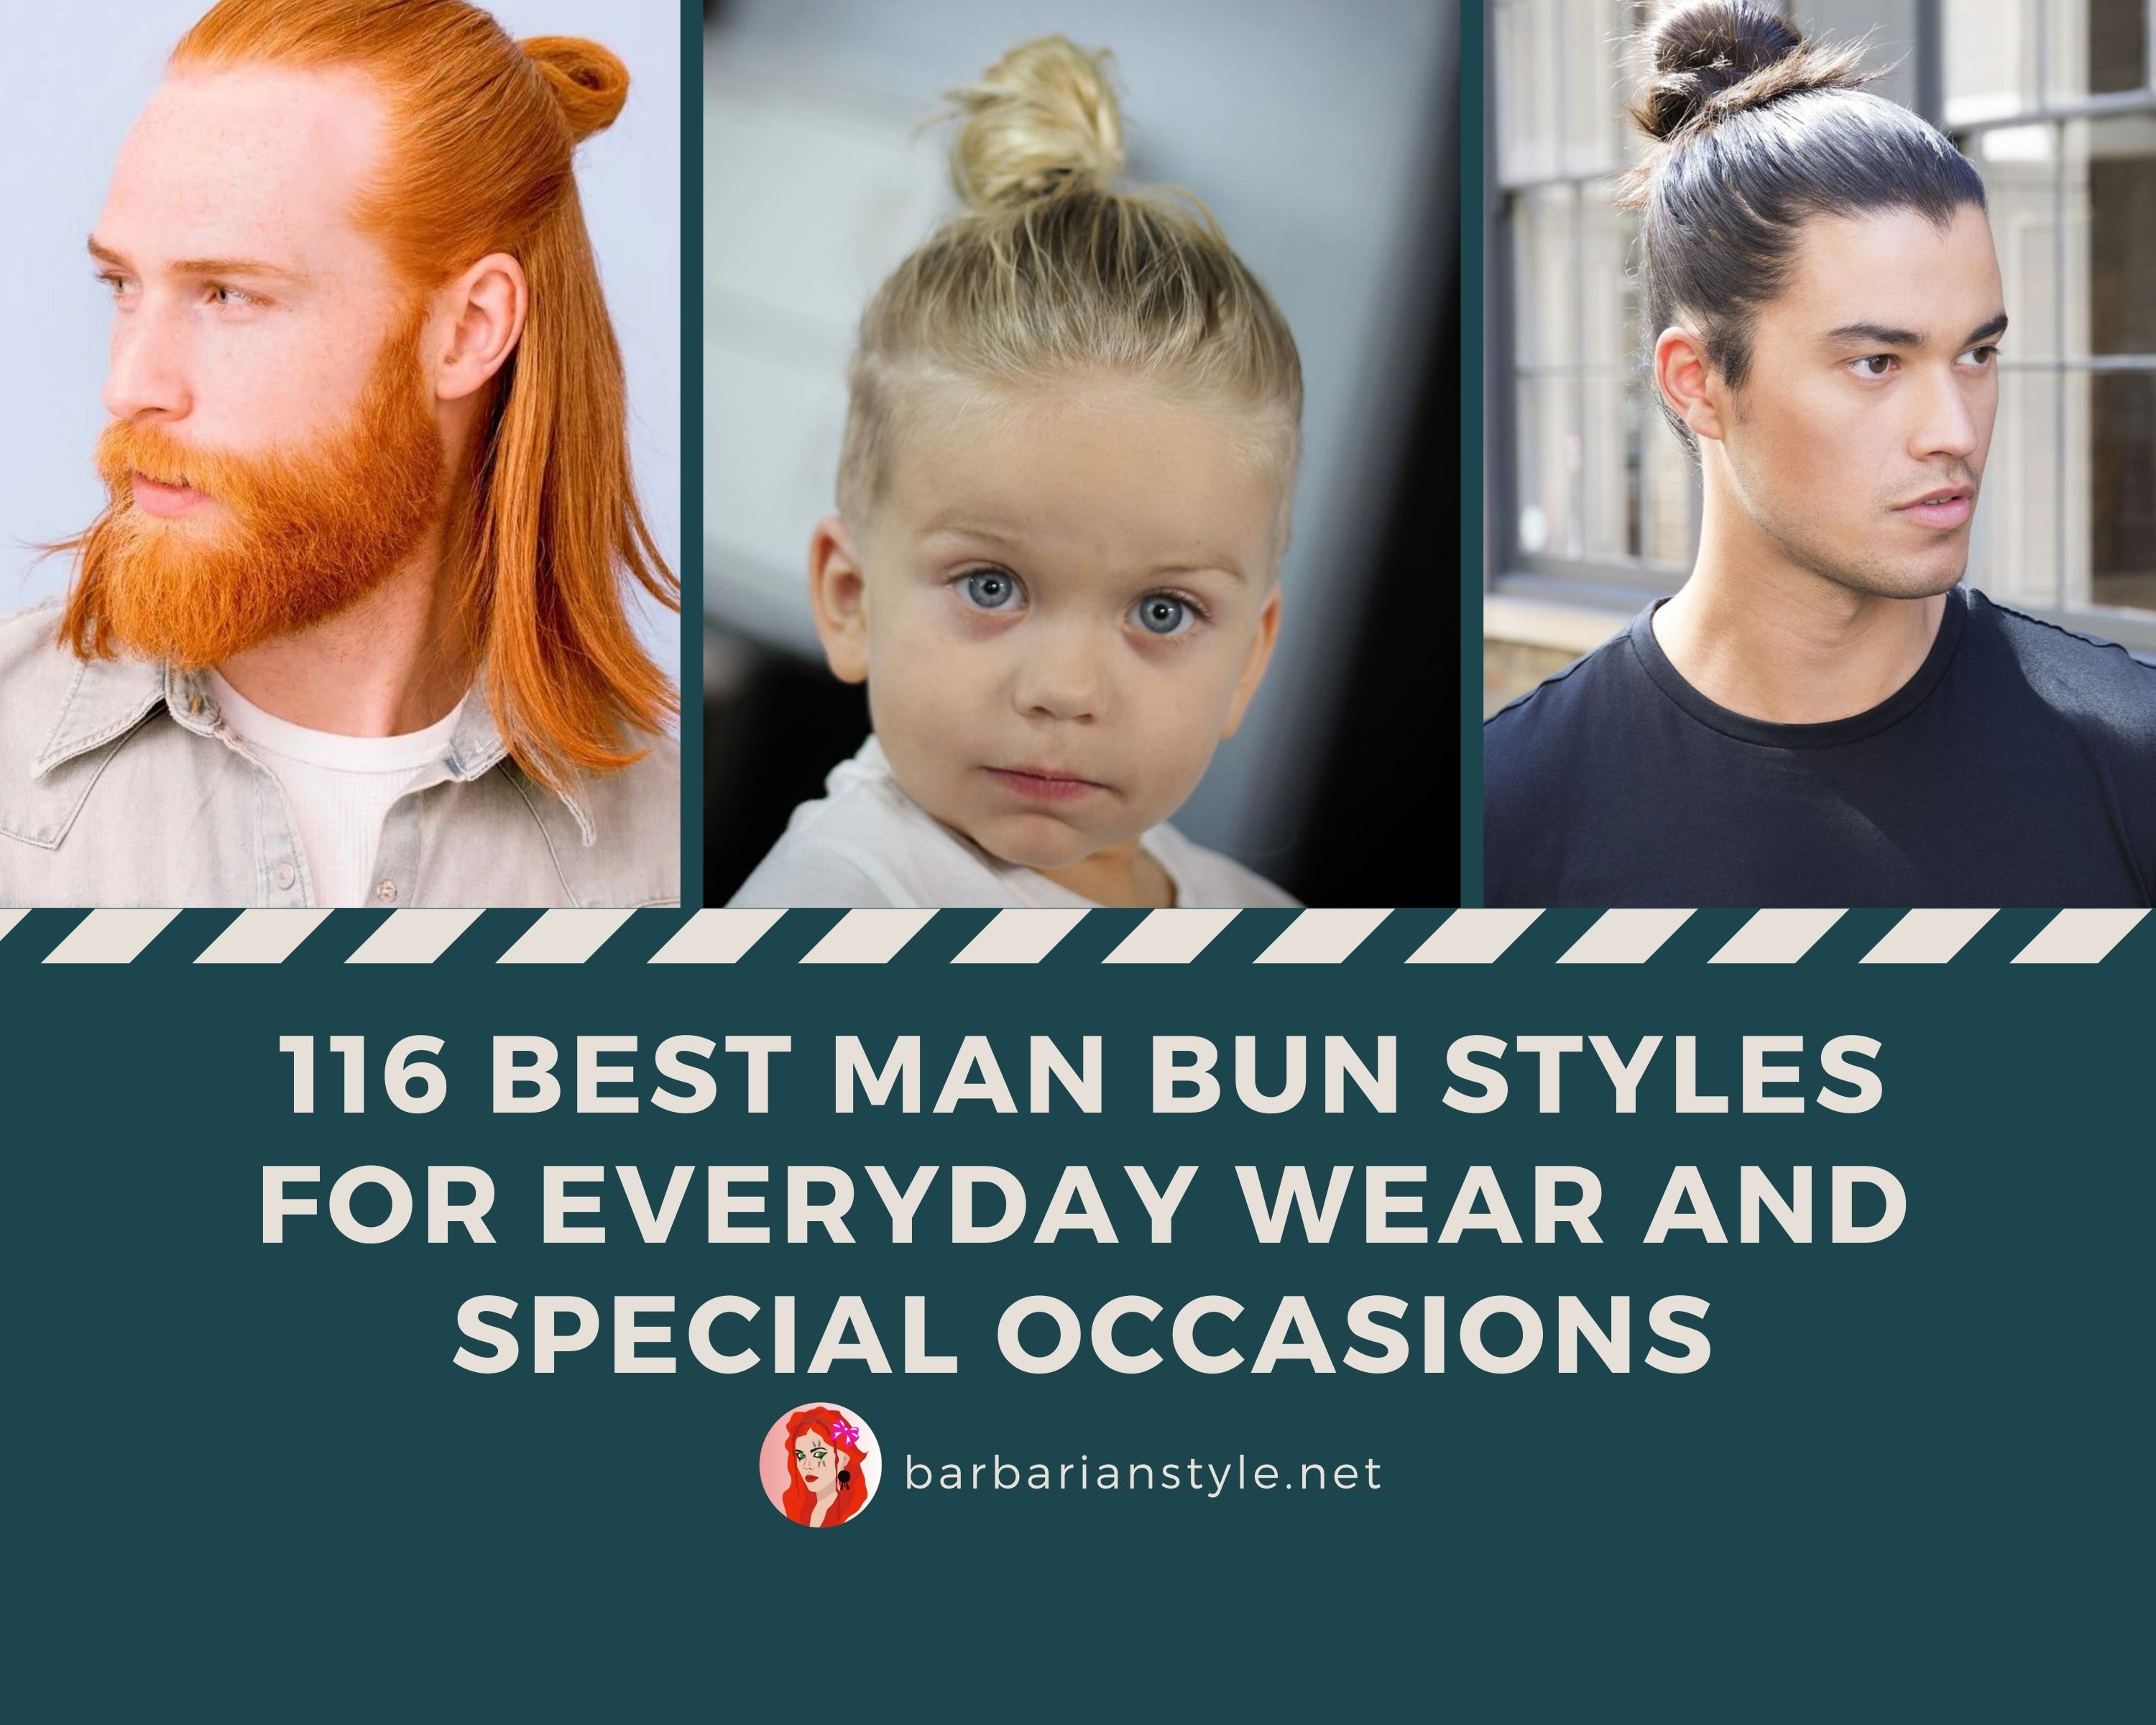 116 Best Man Bun Styles for Everyday Wear and Special Occasions